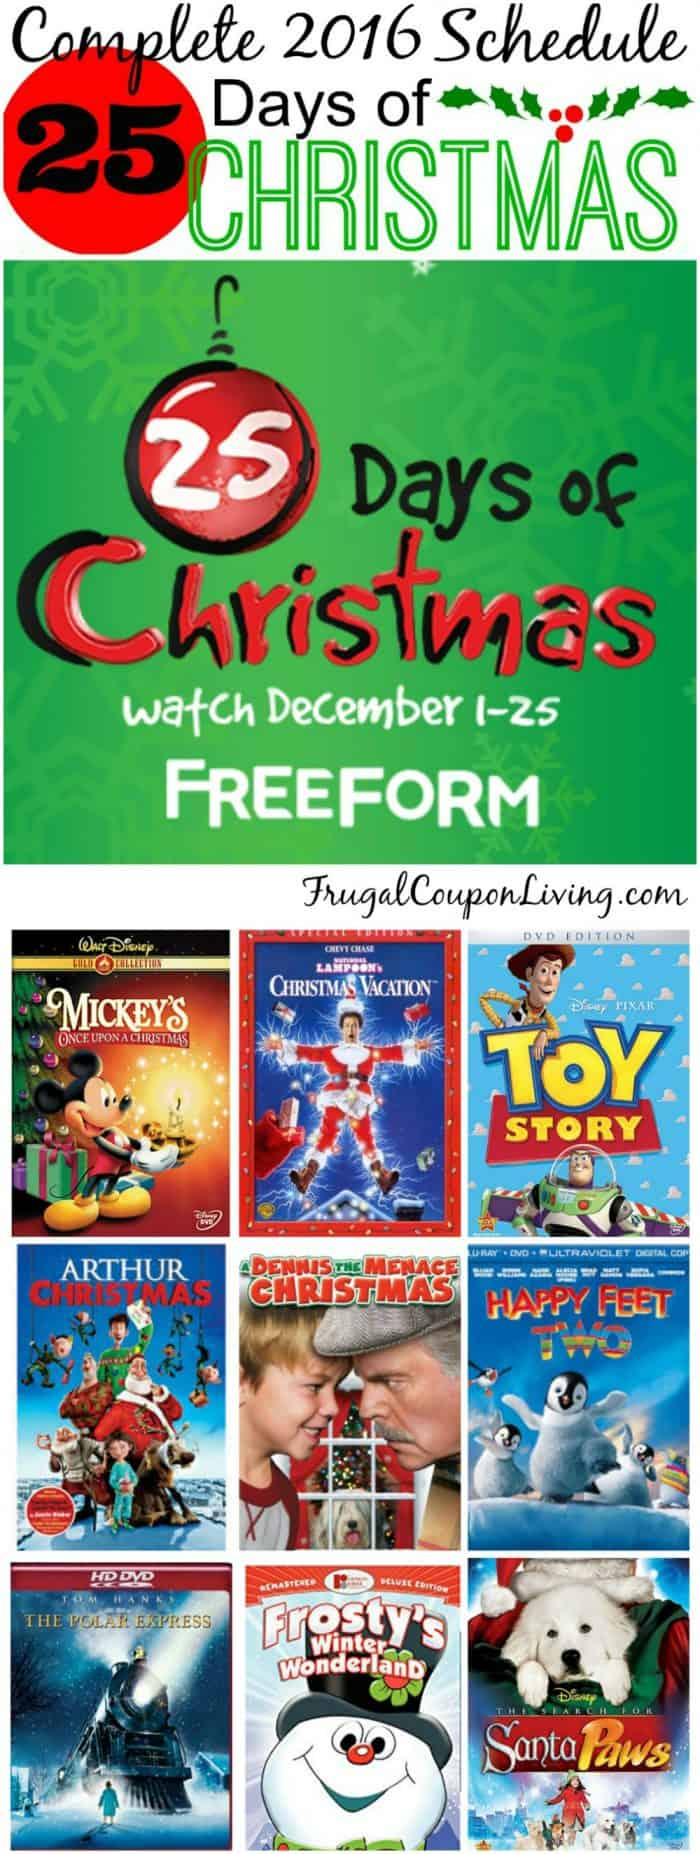 2016-freeform-25-days-of-christmas-abc-family-schedule